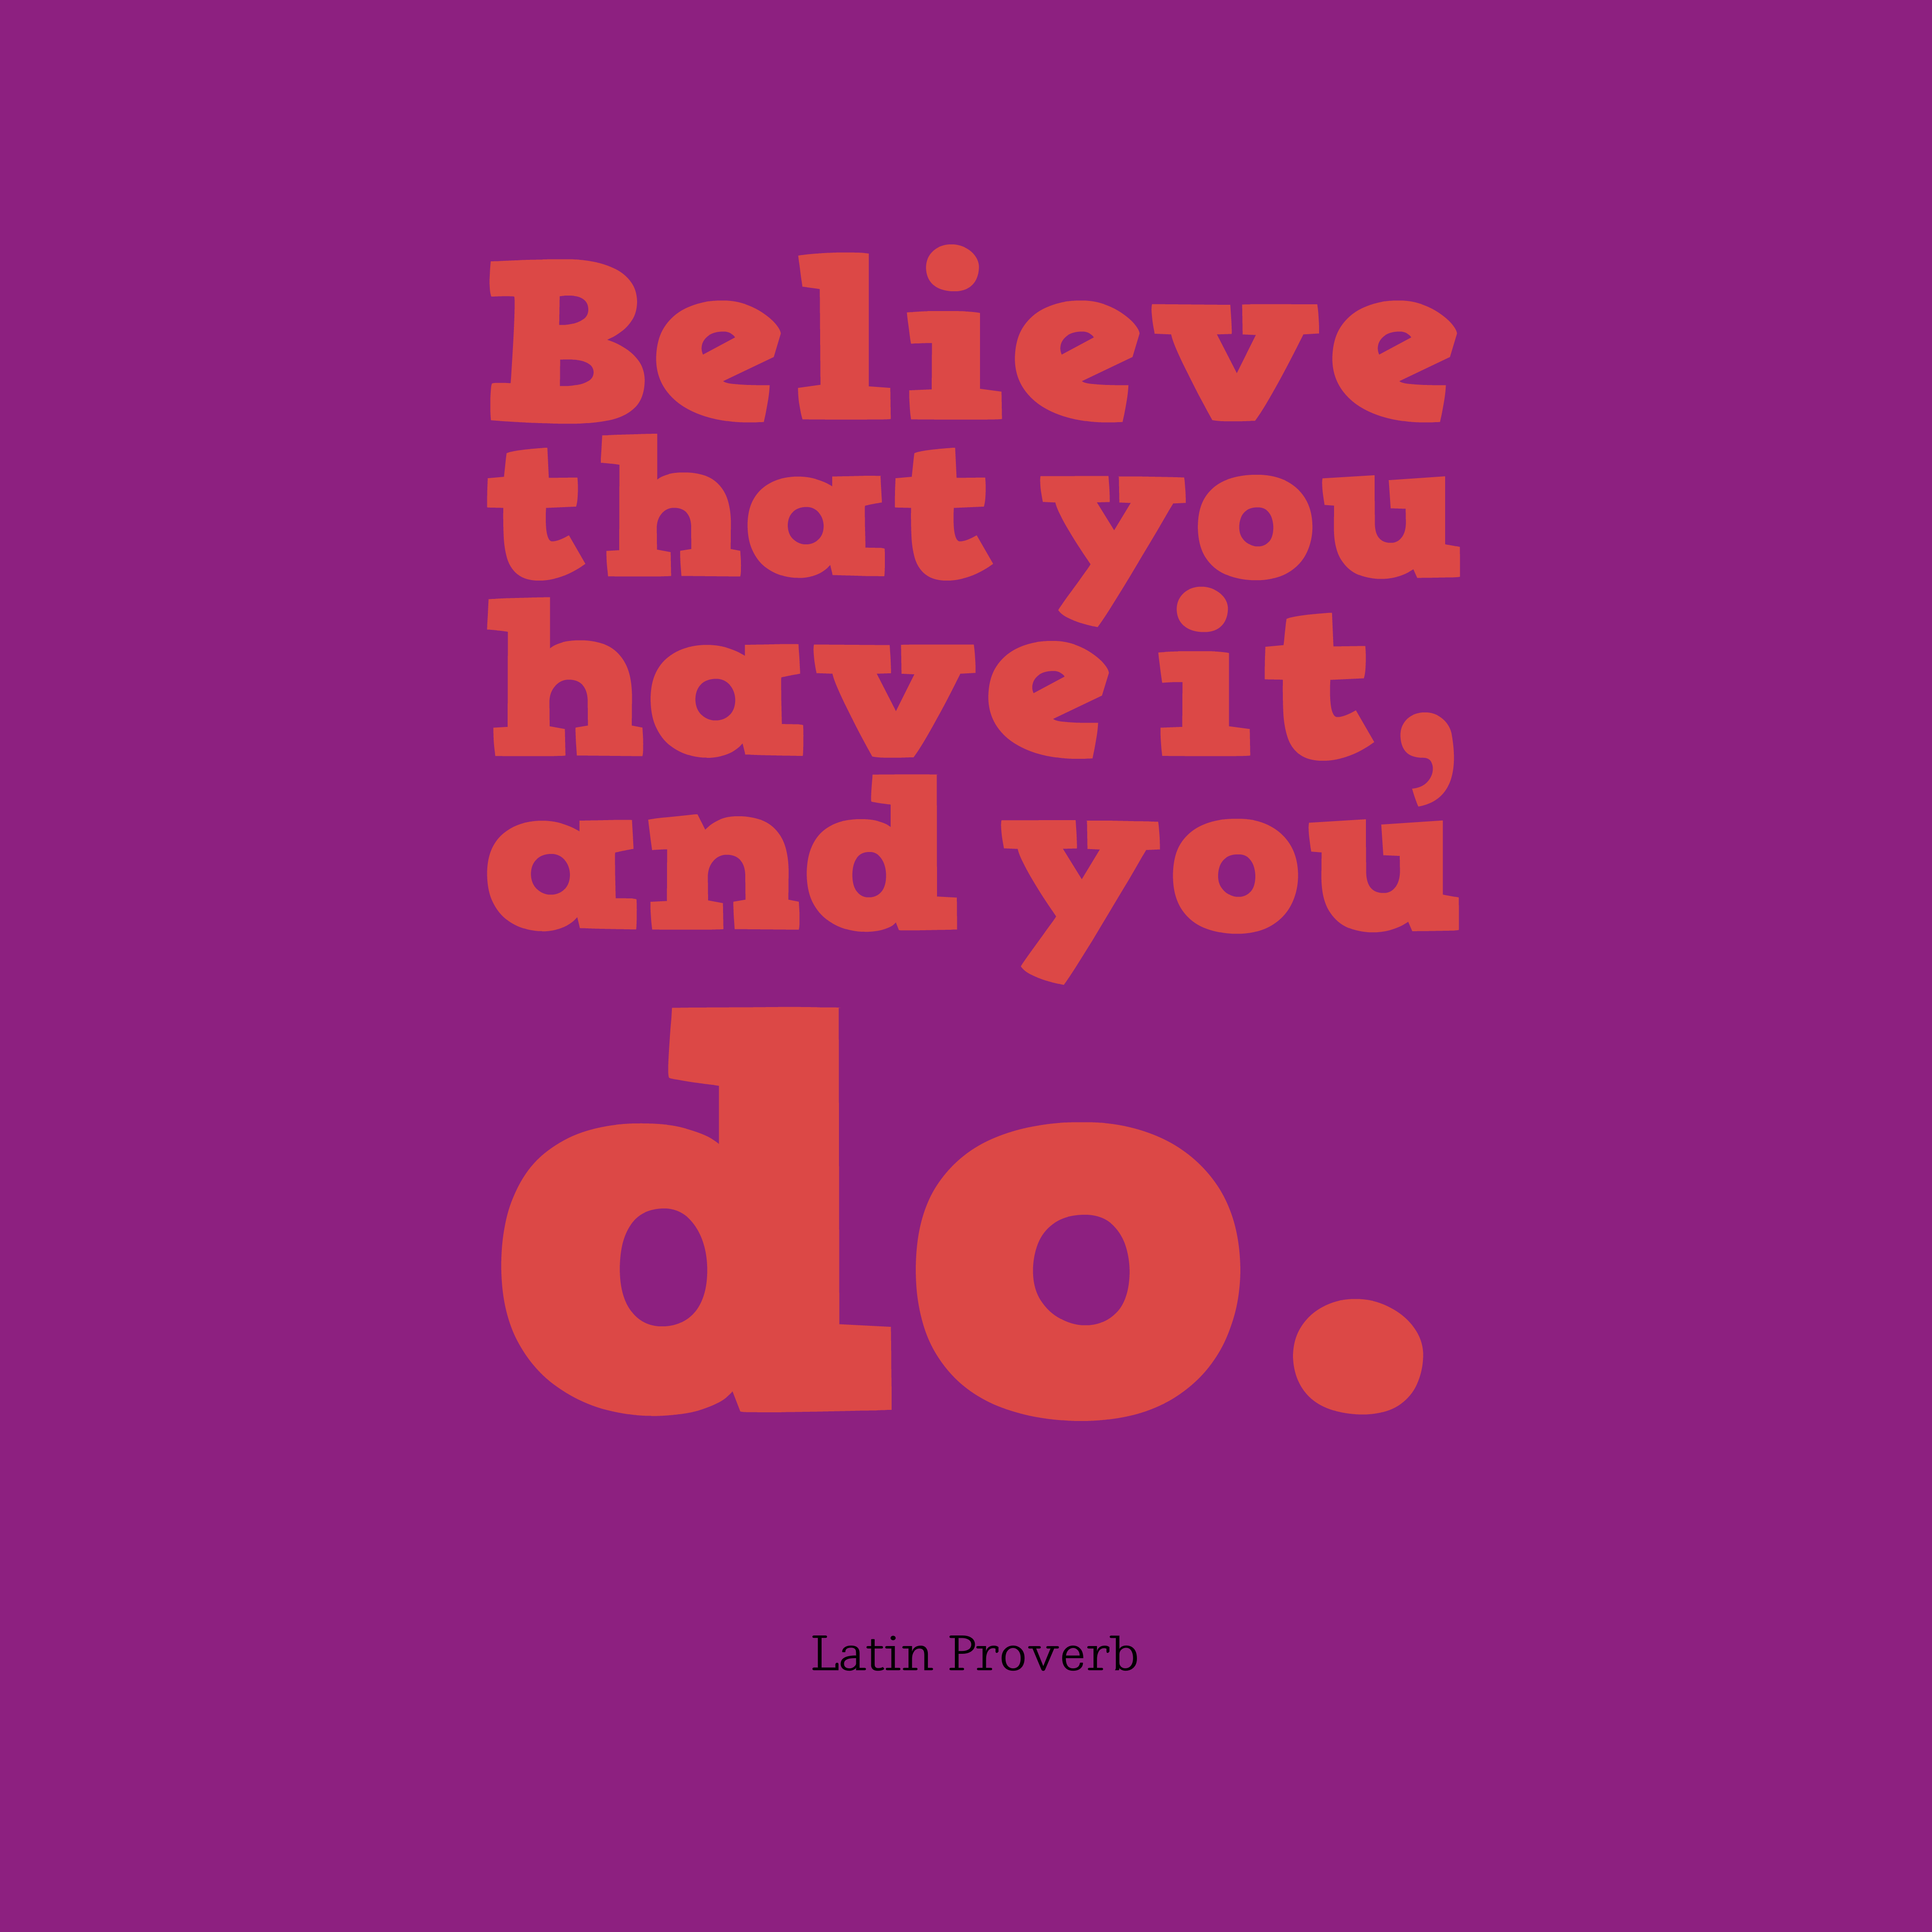 Quotes image of Believe that you have it, and you do.